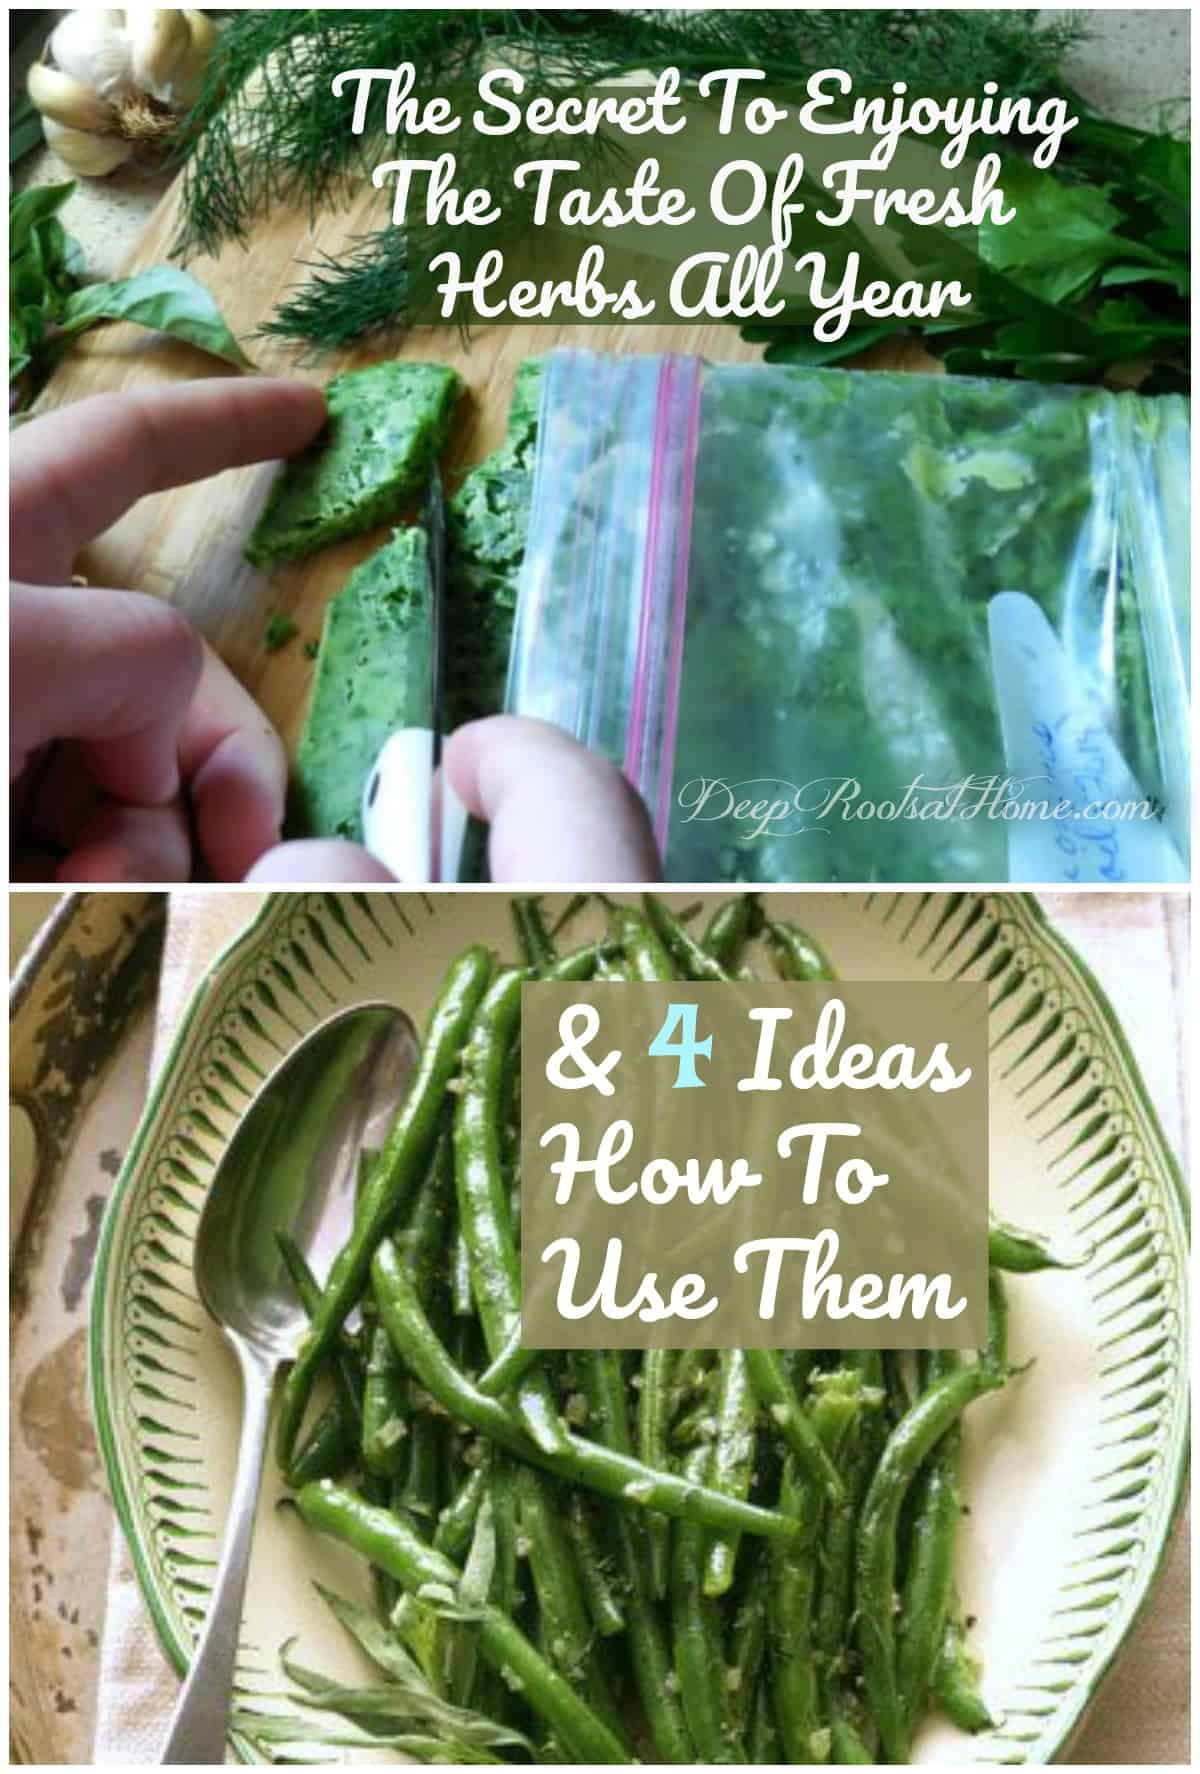 The Secret To Enjoying The Taste Of Fresh Herbs All Year. The frozen herbs both in the freezer bag and in the recipe.